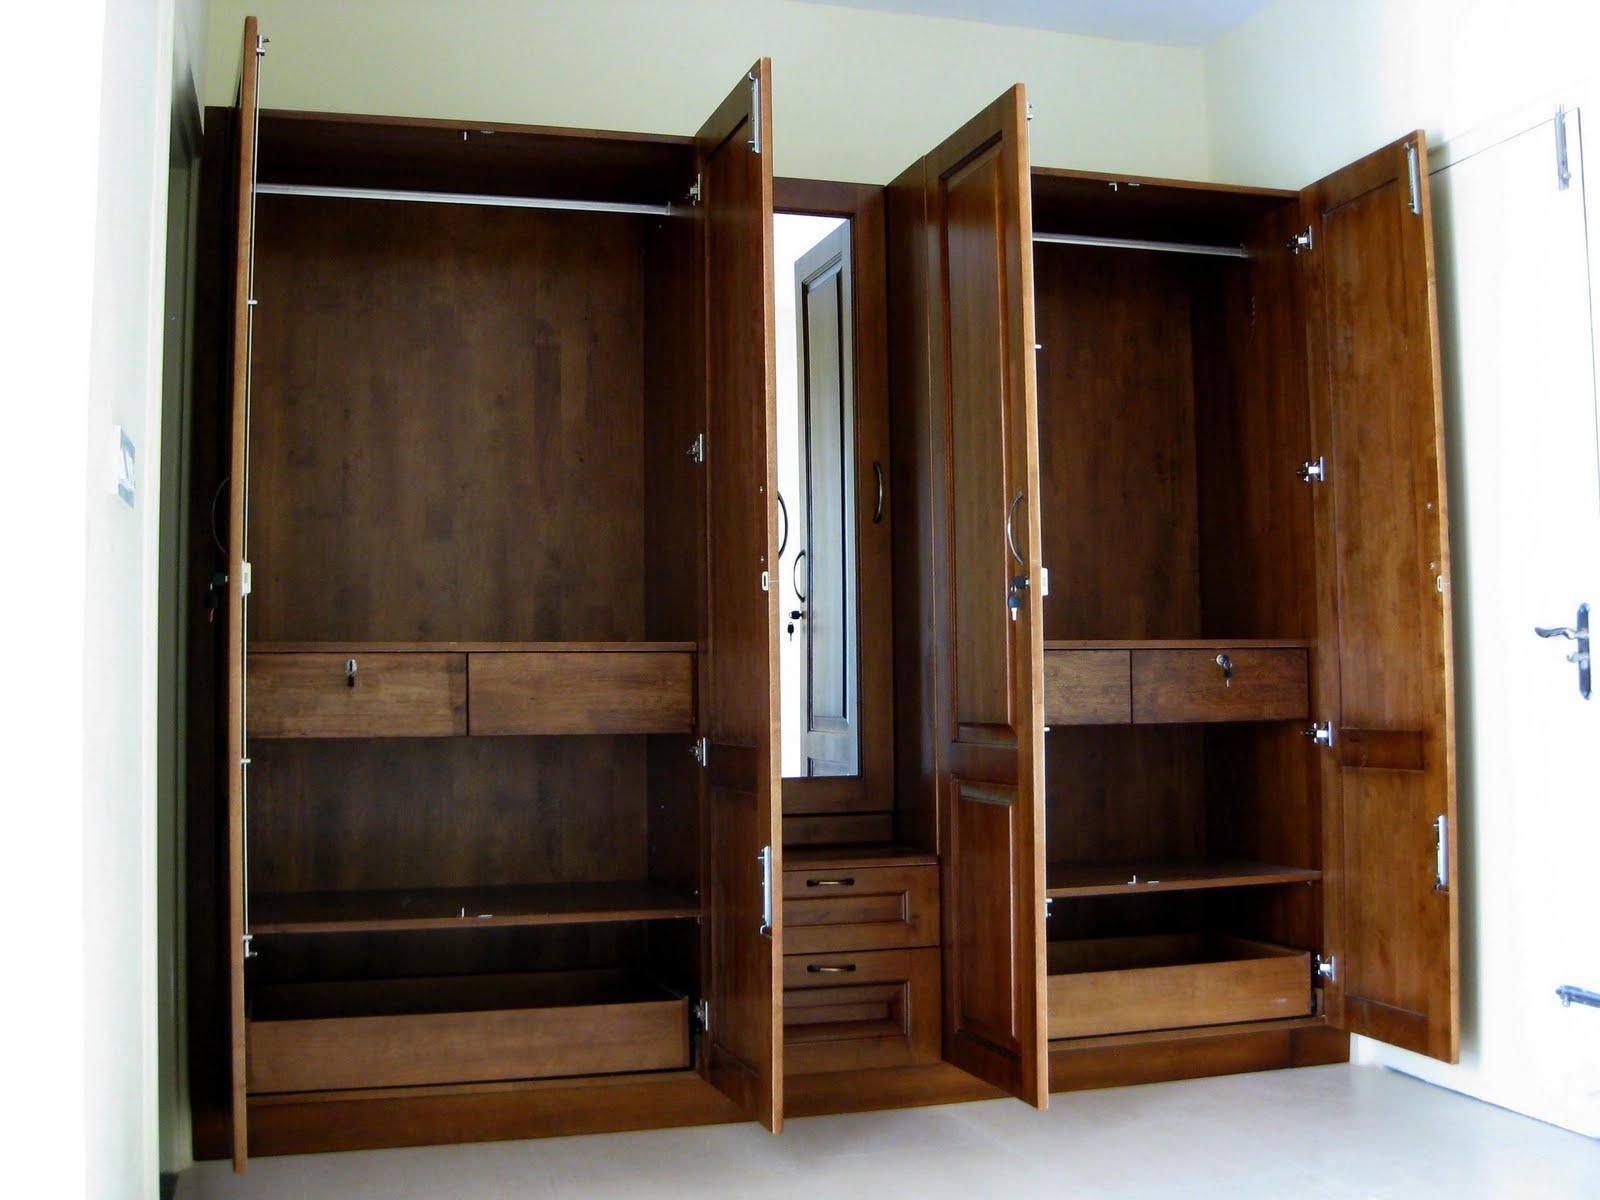 2018 Discount Wardrobes Pertaining To Furniture : White Mirrored Wardrobe Furniture Armoire Closet Large (View 2 of 15)